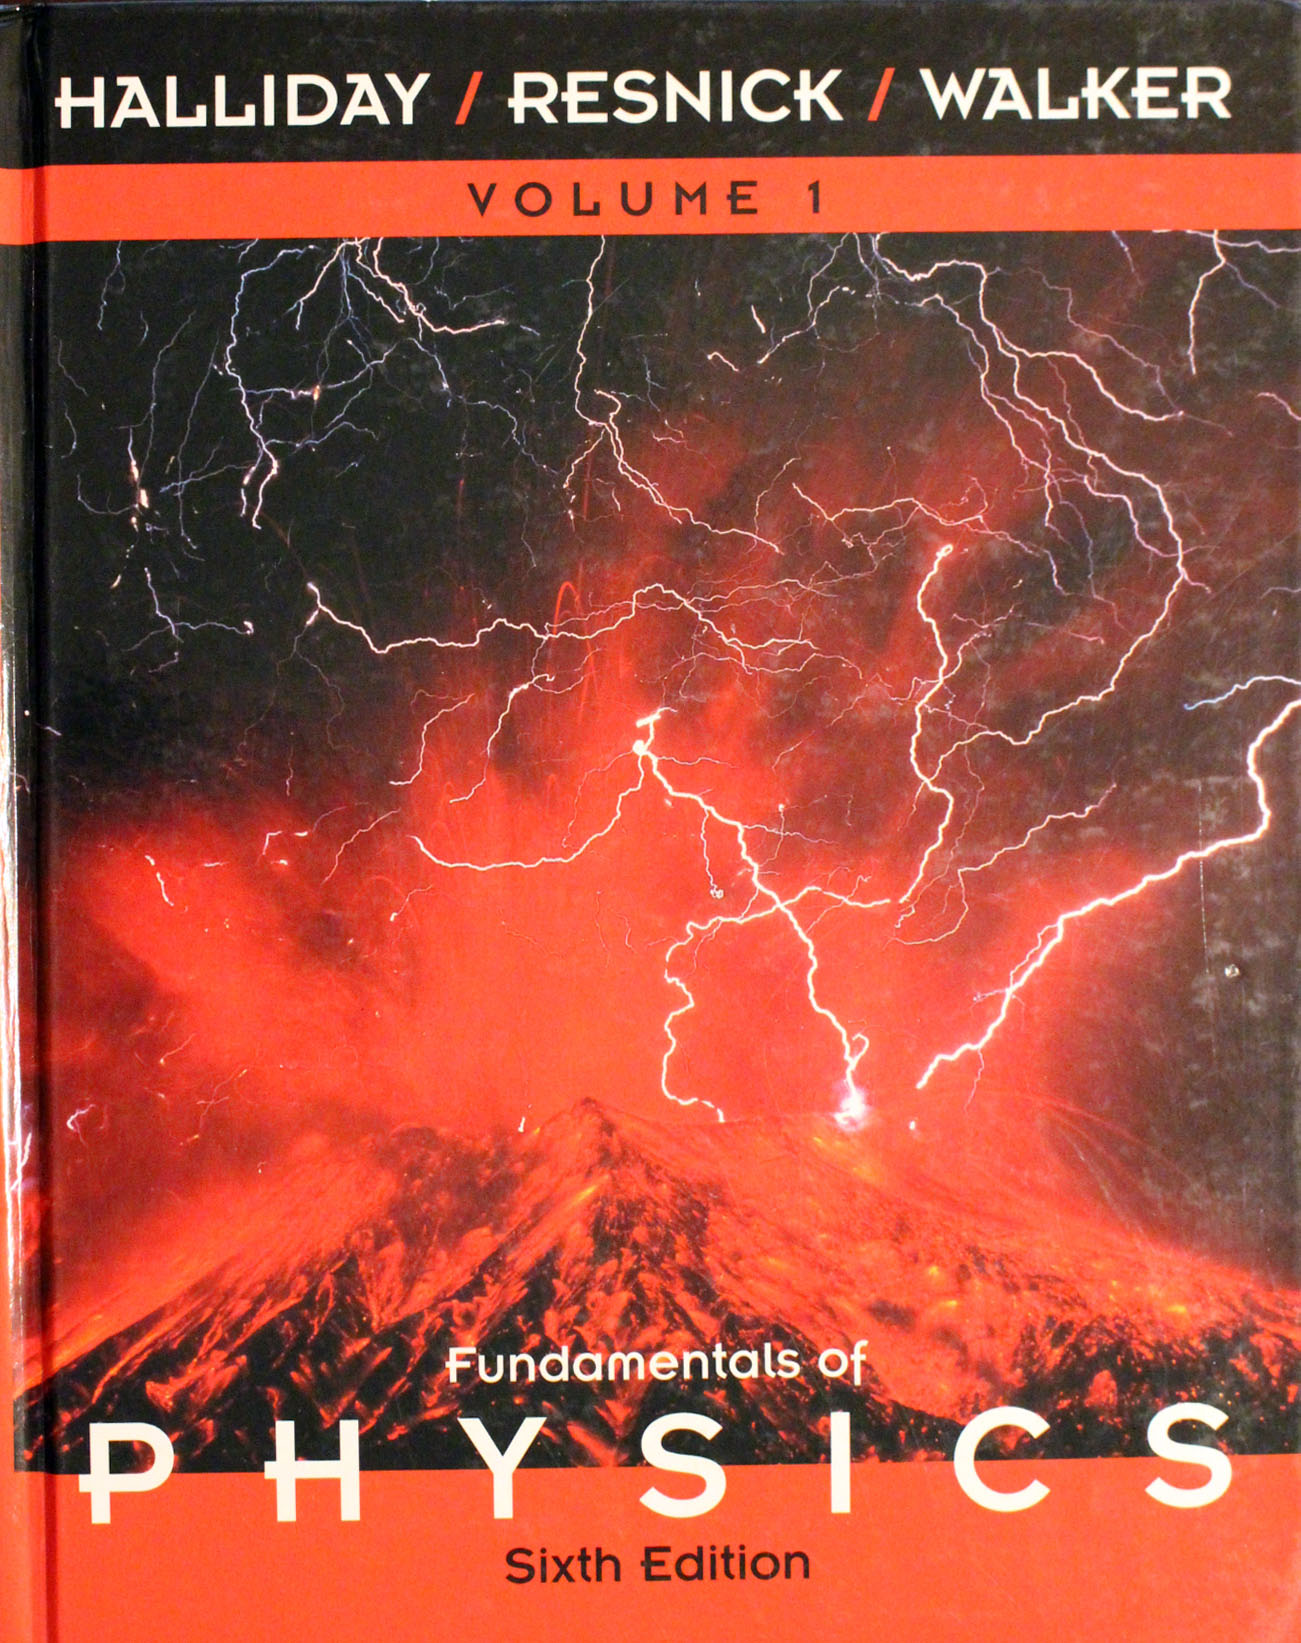 Fundamentals of physics (6th edition) halliday, resnick, walker.